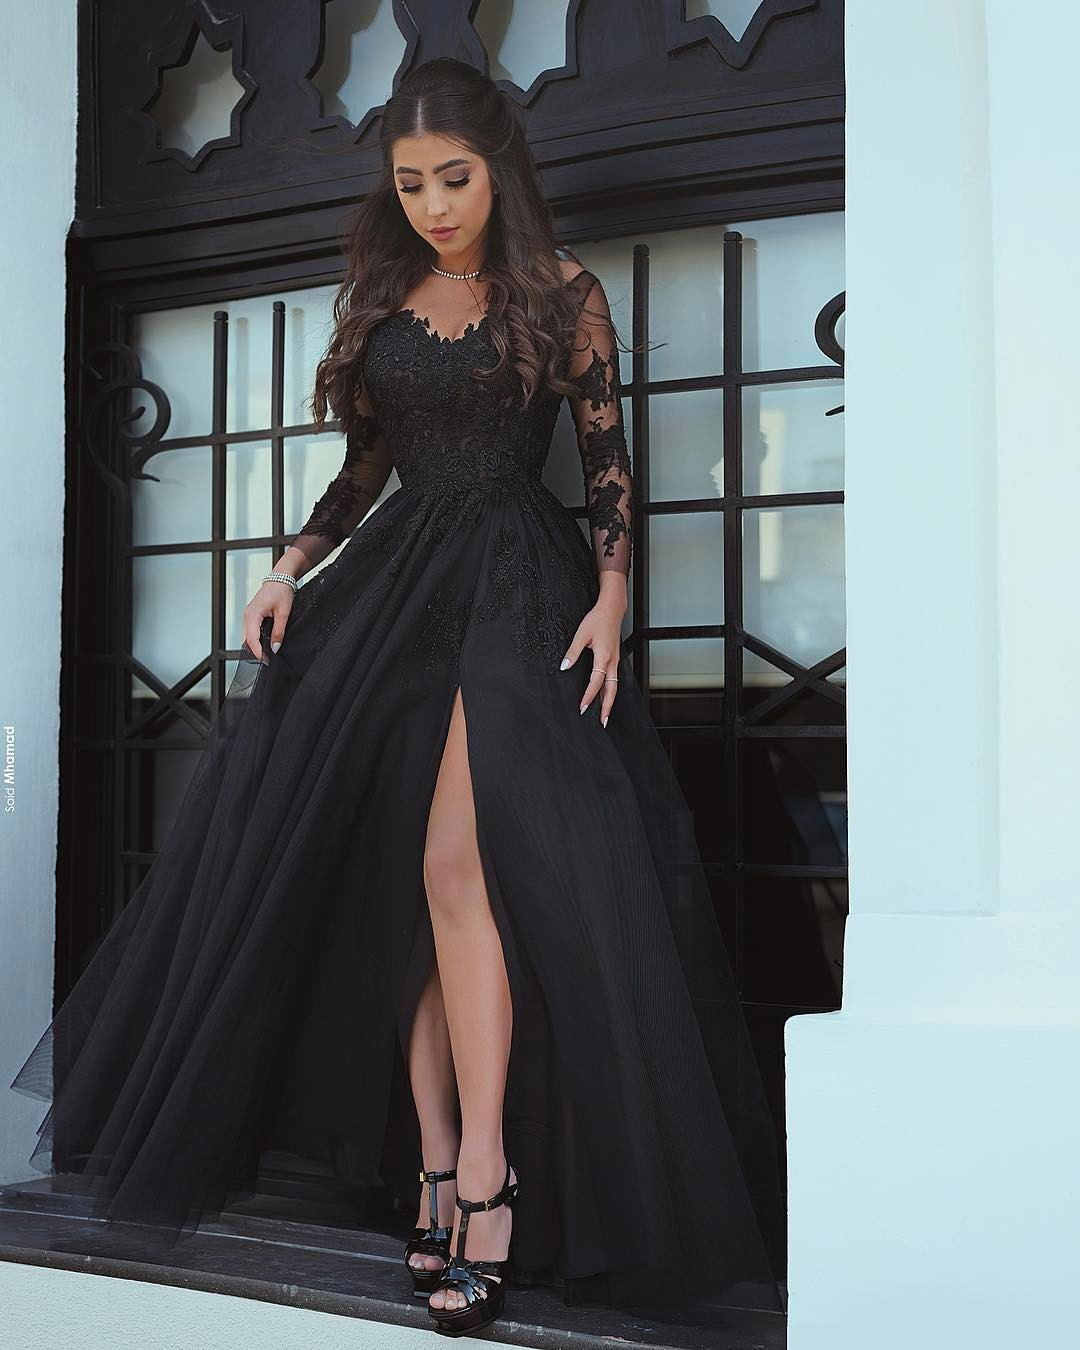 765e086978df Said Mhamad 2018 Black Prom Dresses with Long Sleeves Lace Appliques Sexy Side  Slit Party Gowns